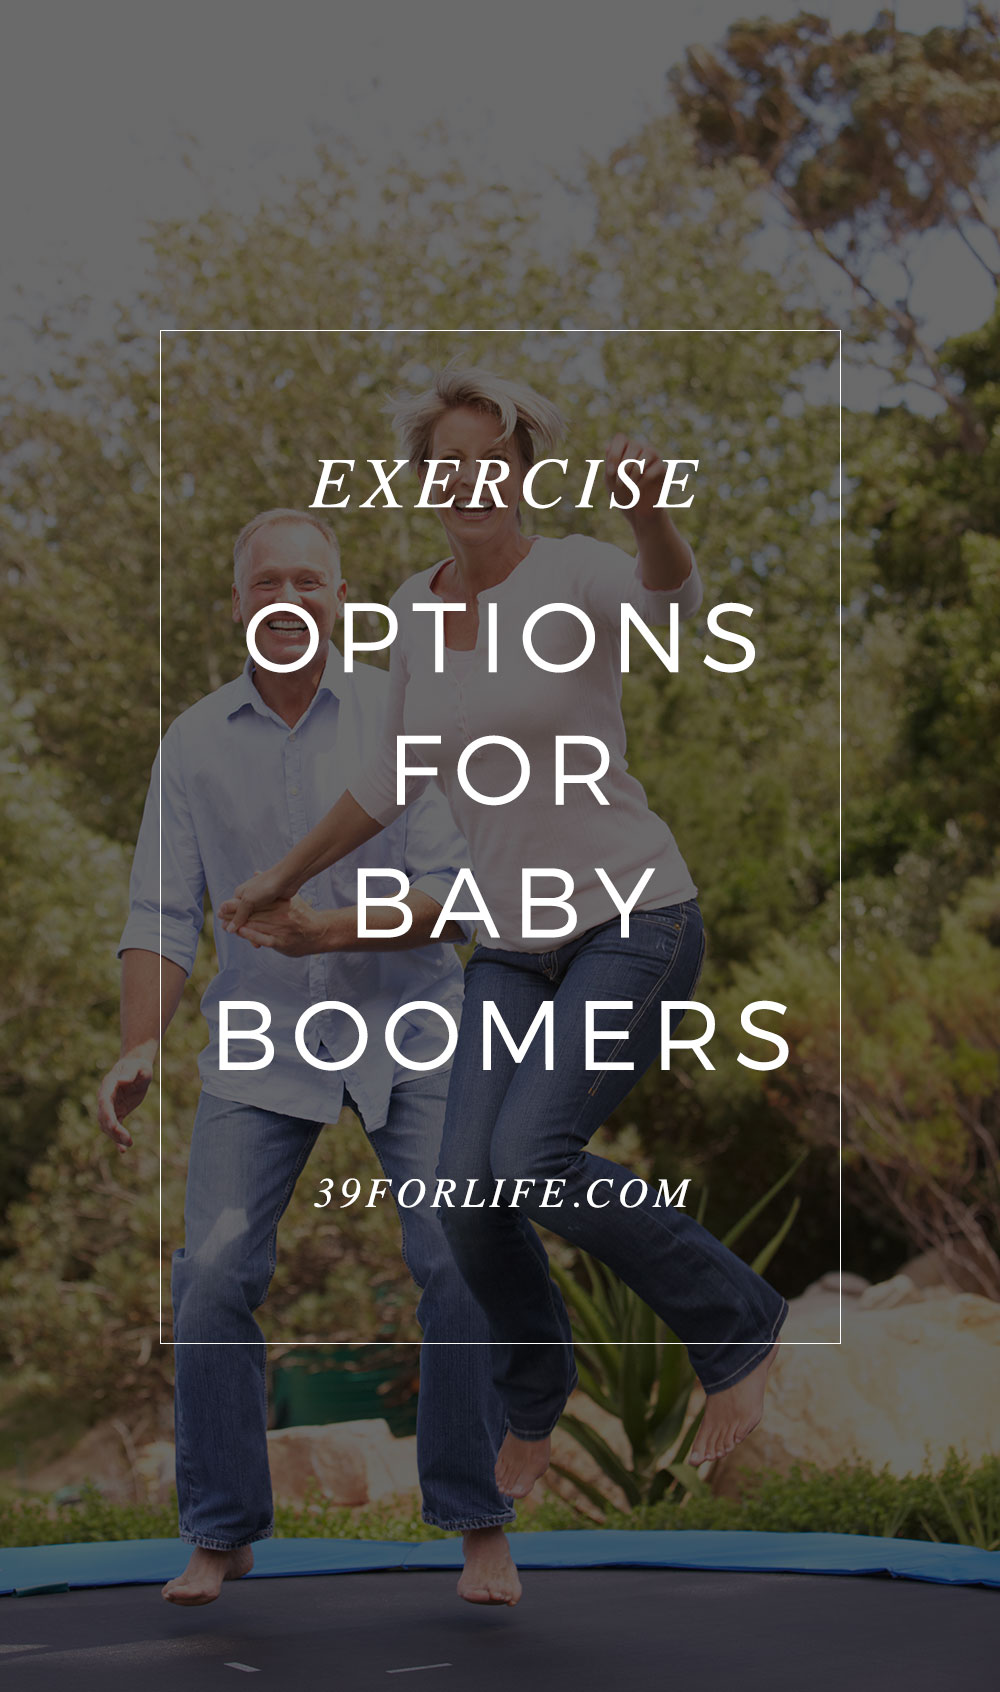 If you're over 50, here are some easy exercise options!